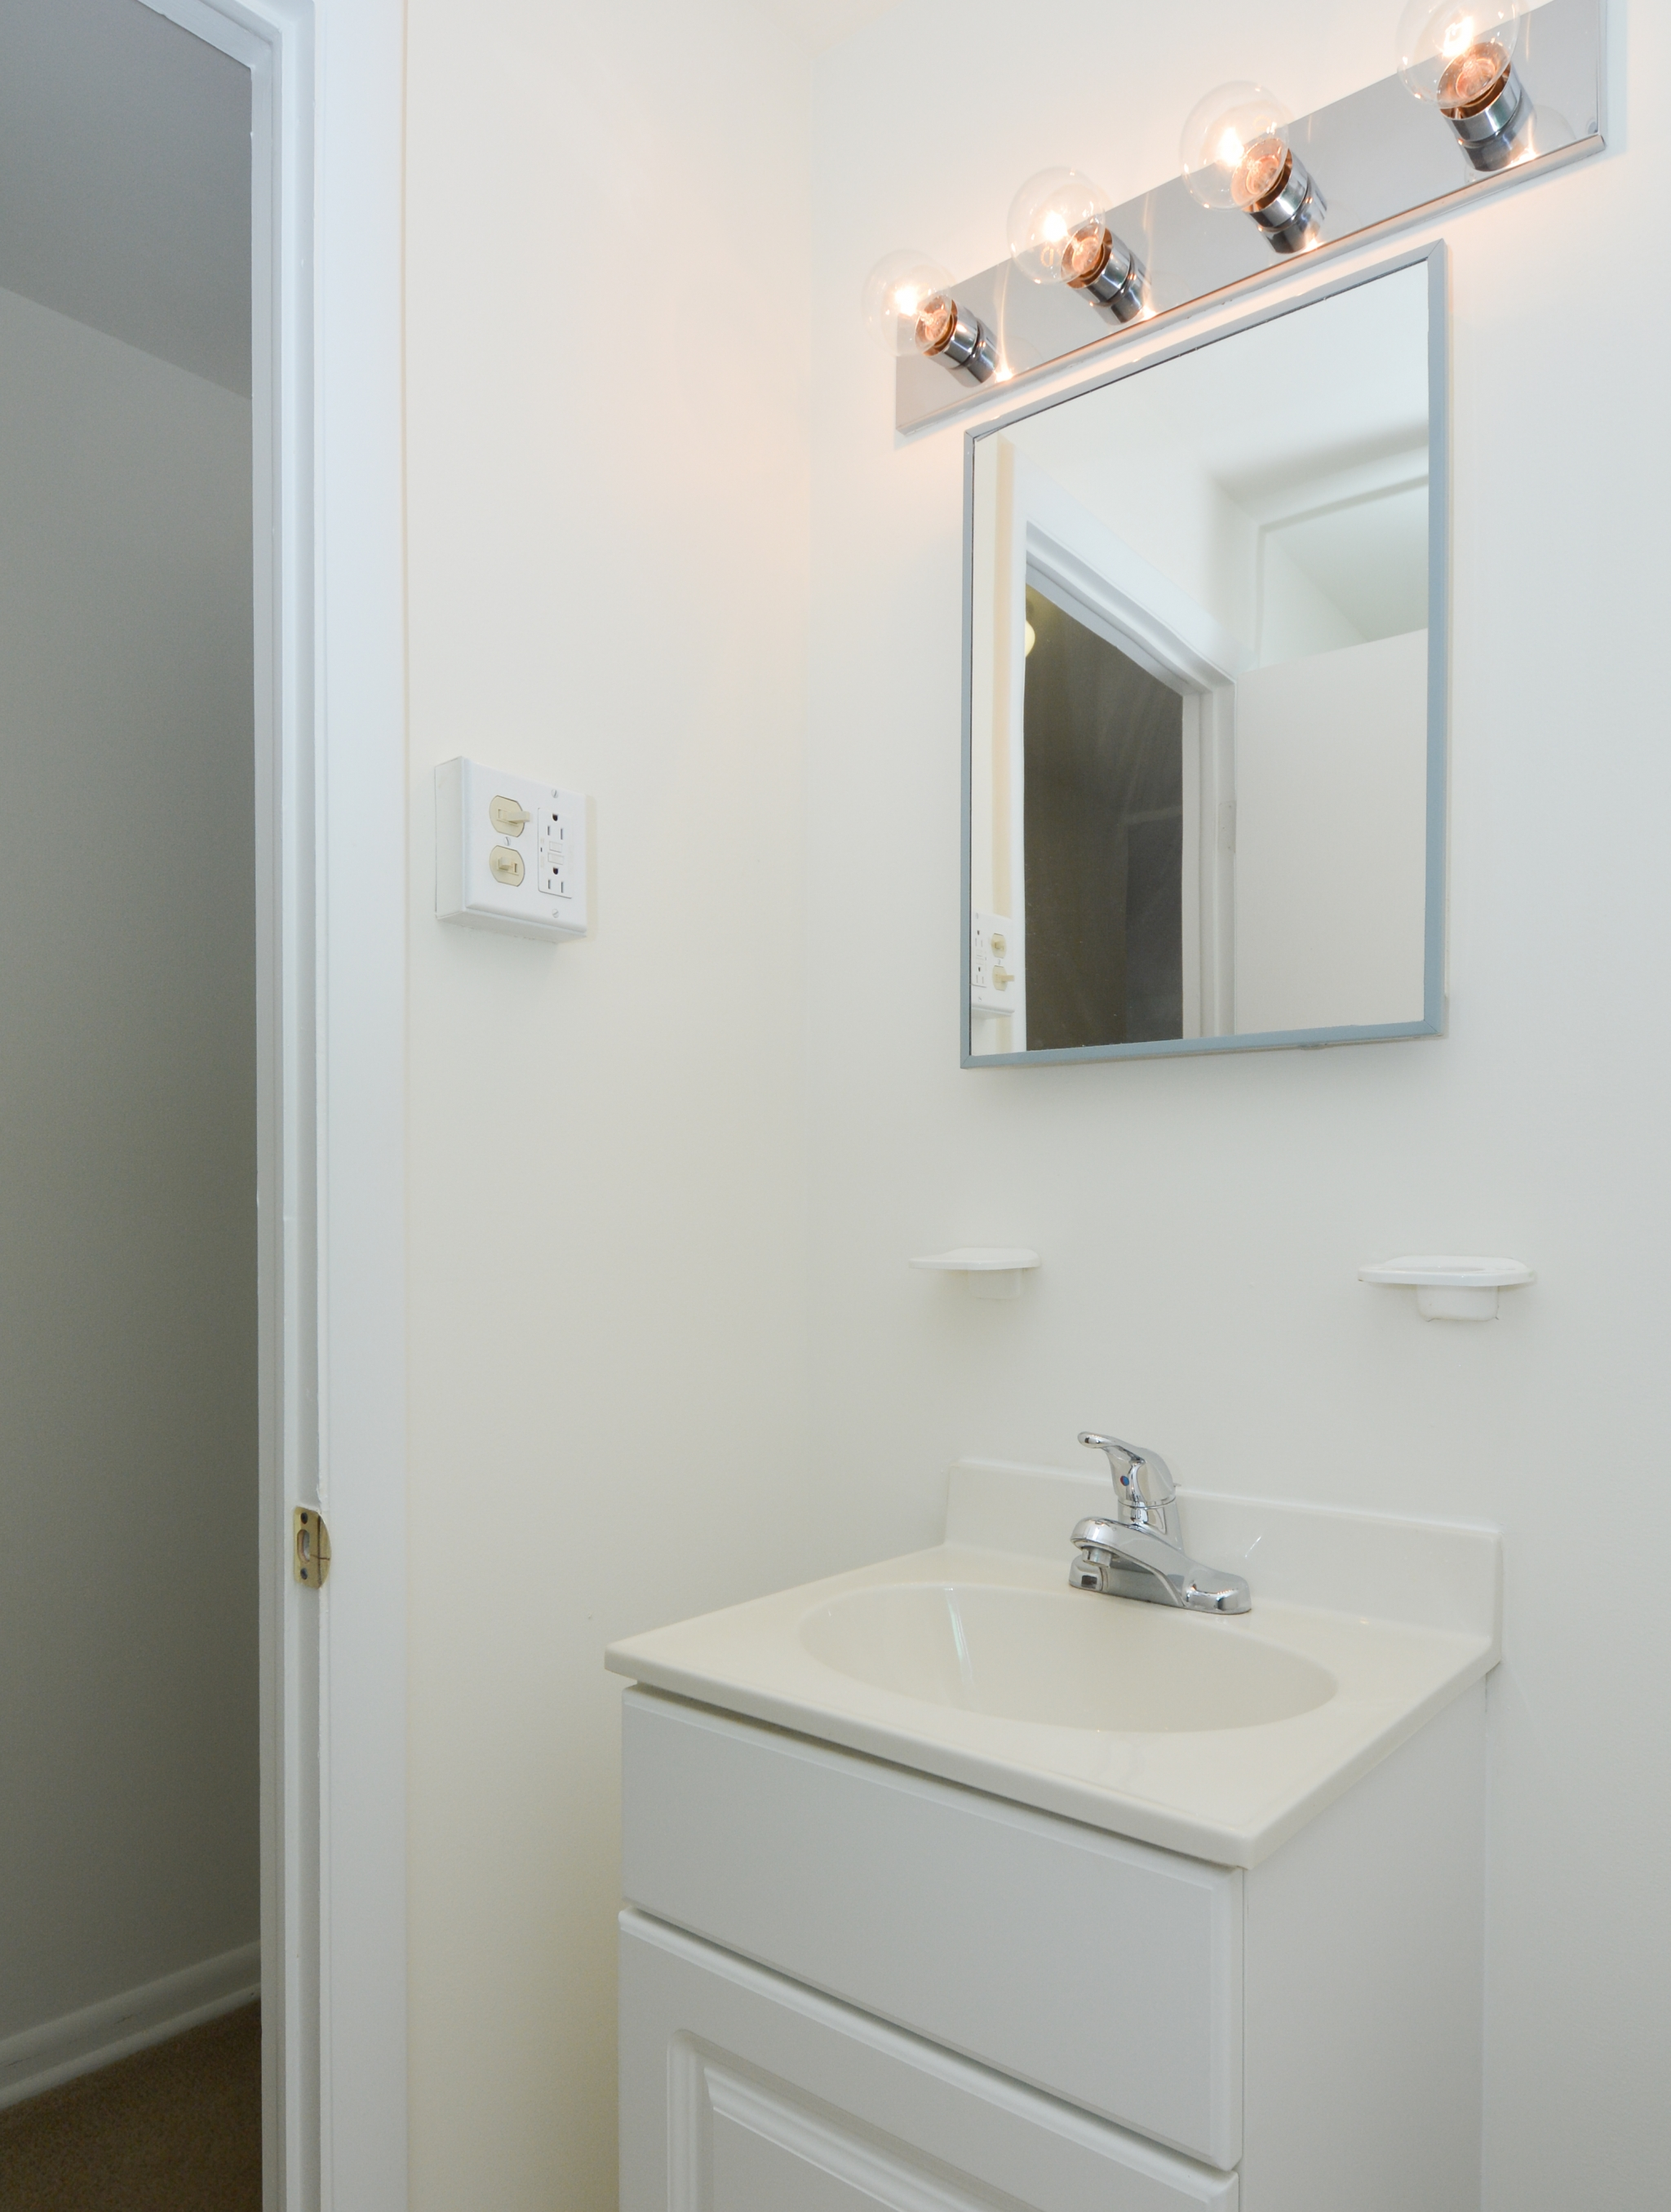 Boothwyn Court Sample Bathroom with White Cabinets | Apartments in Garnet Valley, PA